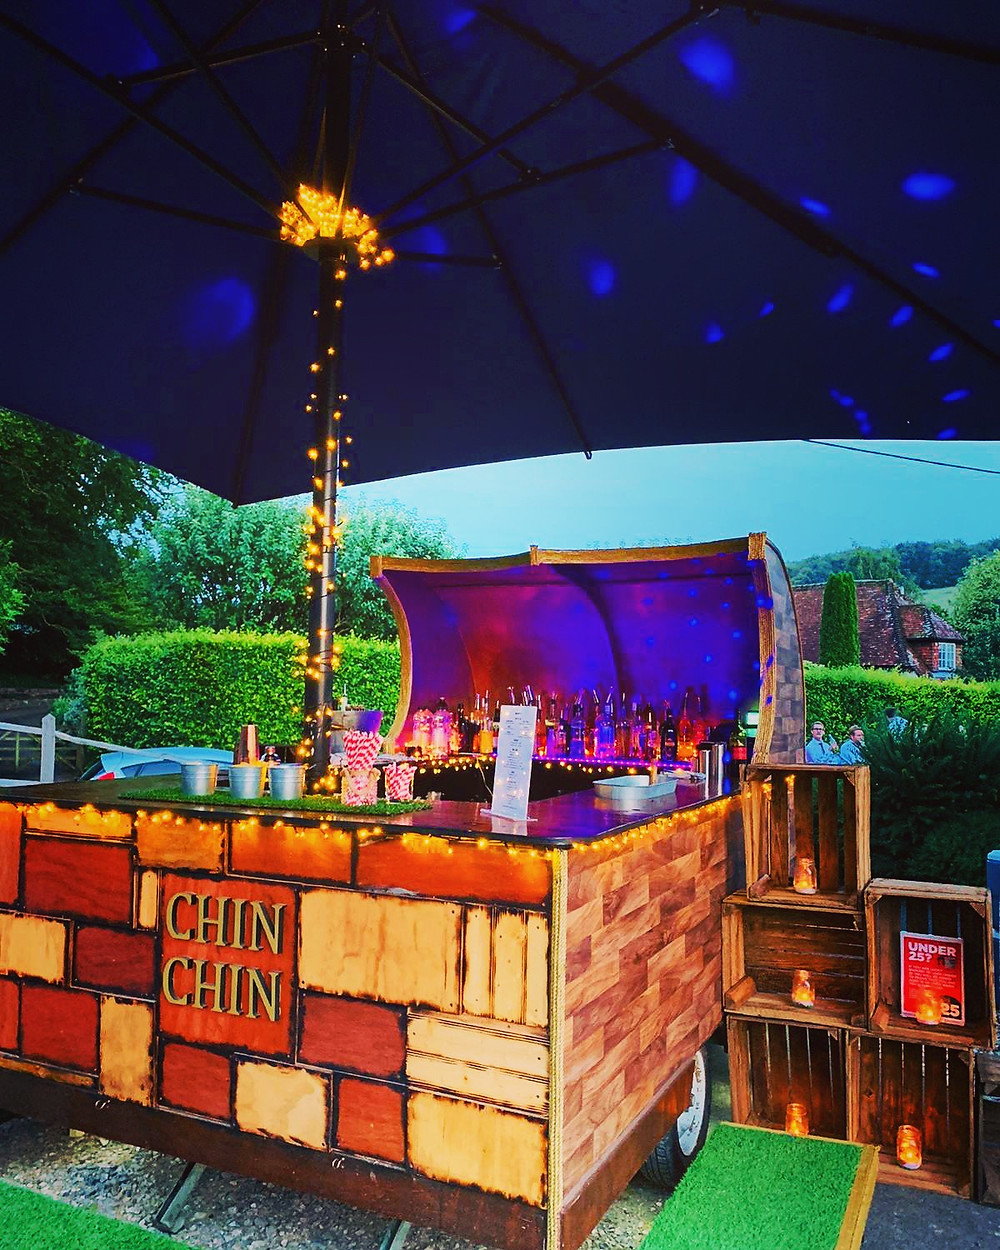 Chin Chin Caravan Bar at Richie & Stephanie's East Dean Village Hall Wedding in Chichester